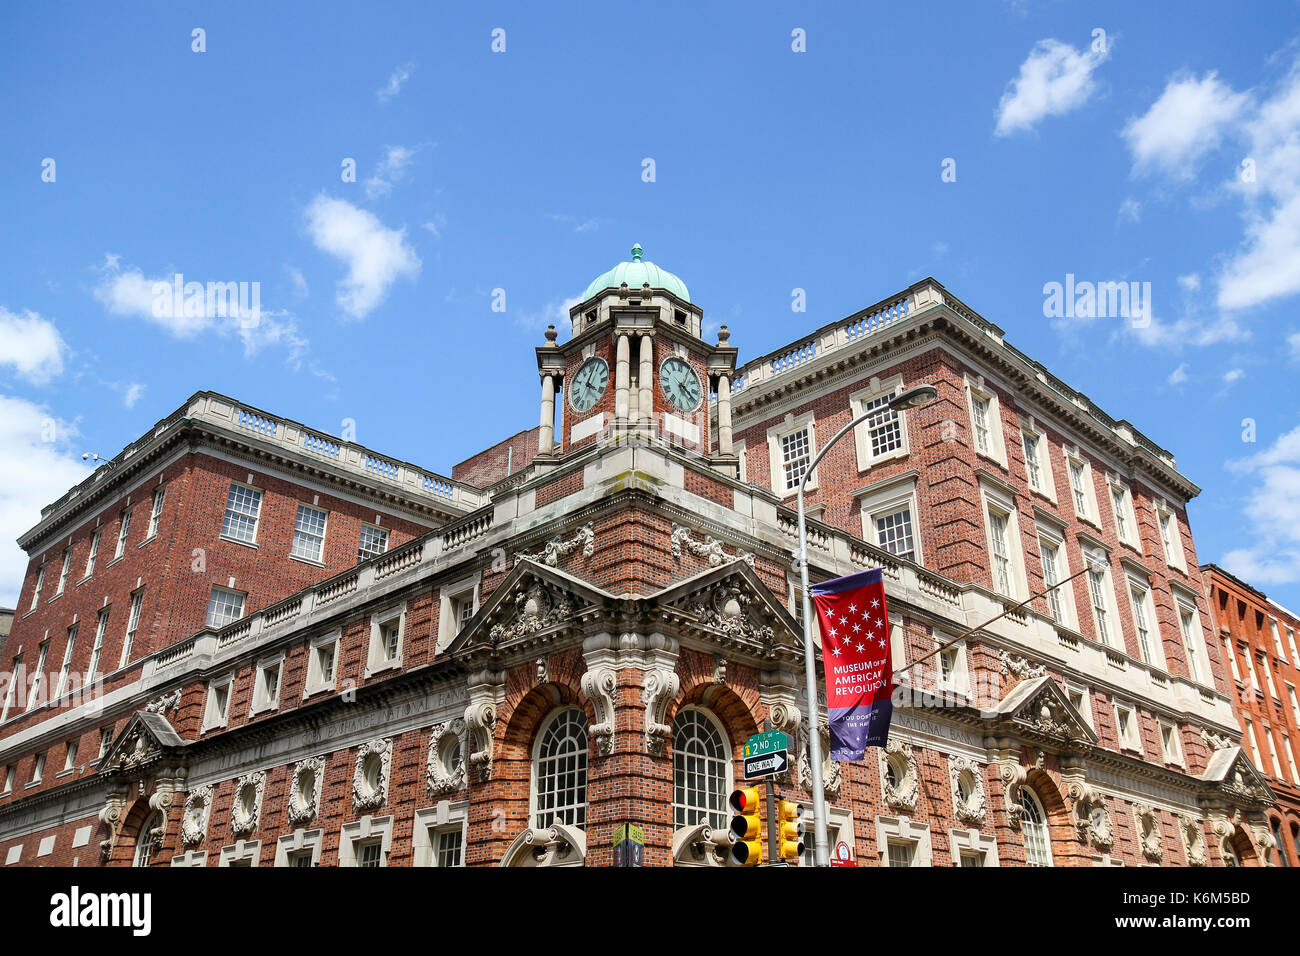 Corn Exchange National Bank Building, Old City, Philadelphia, Pennsylvania, United States - Stock Image